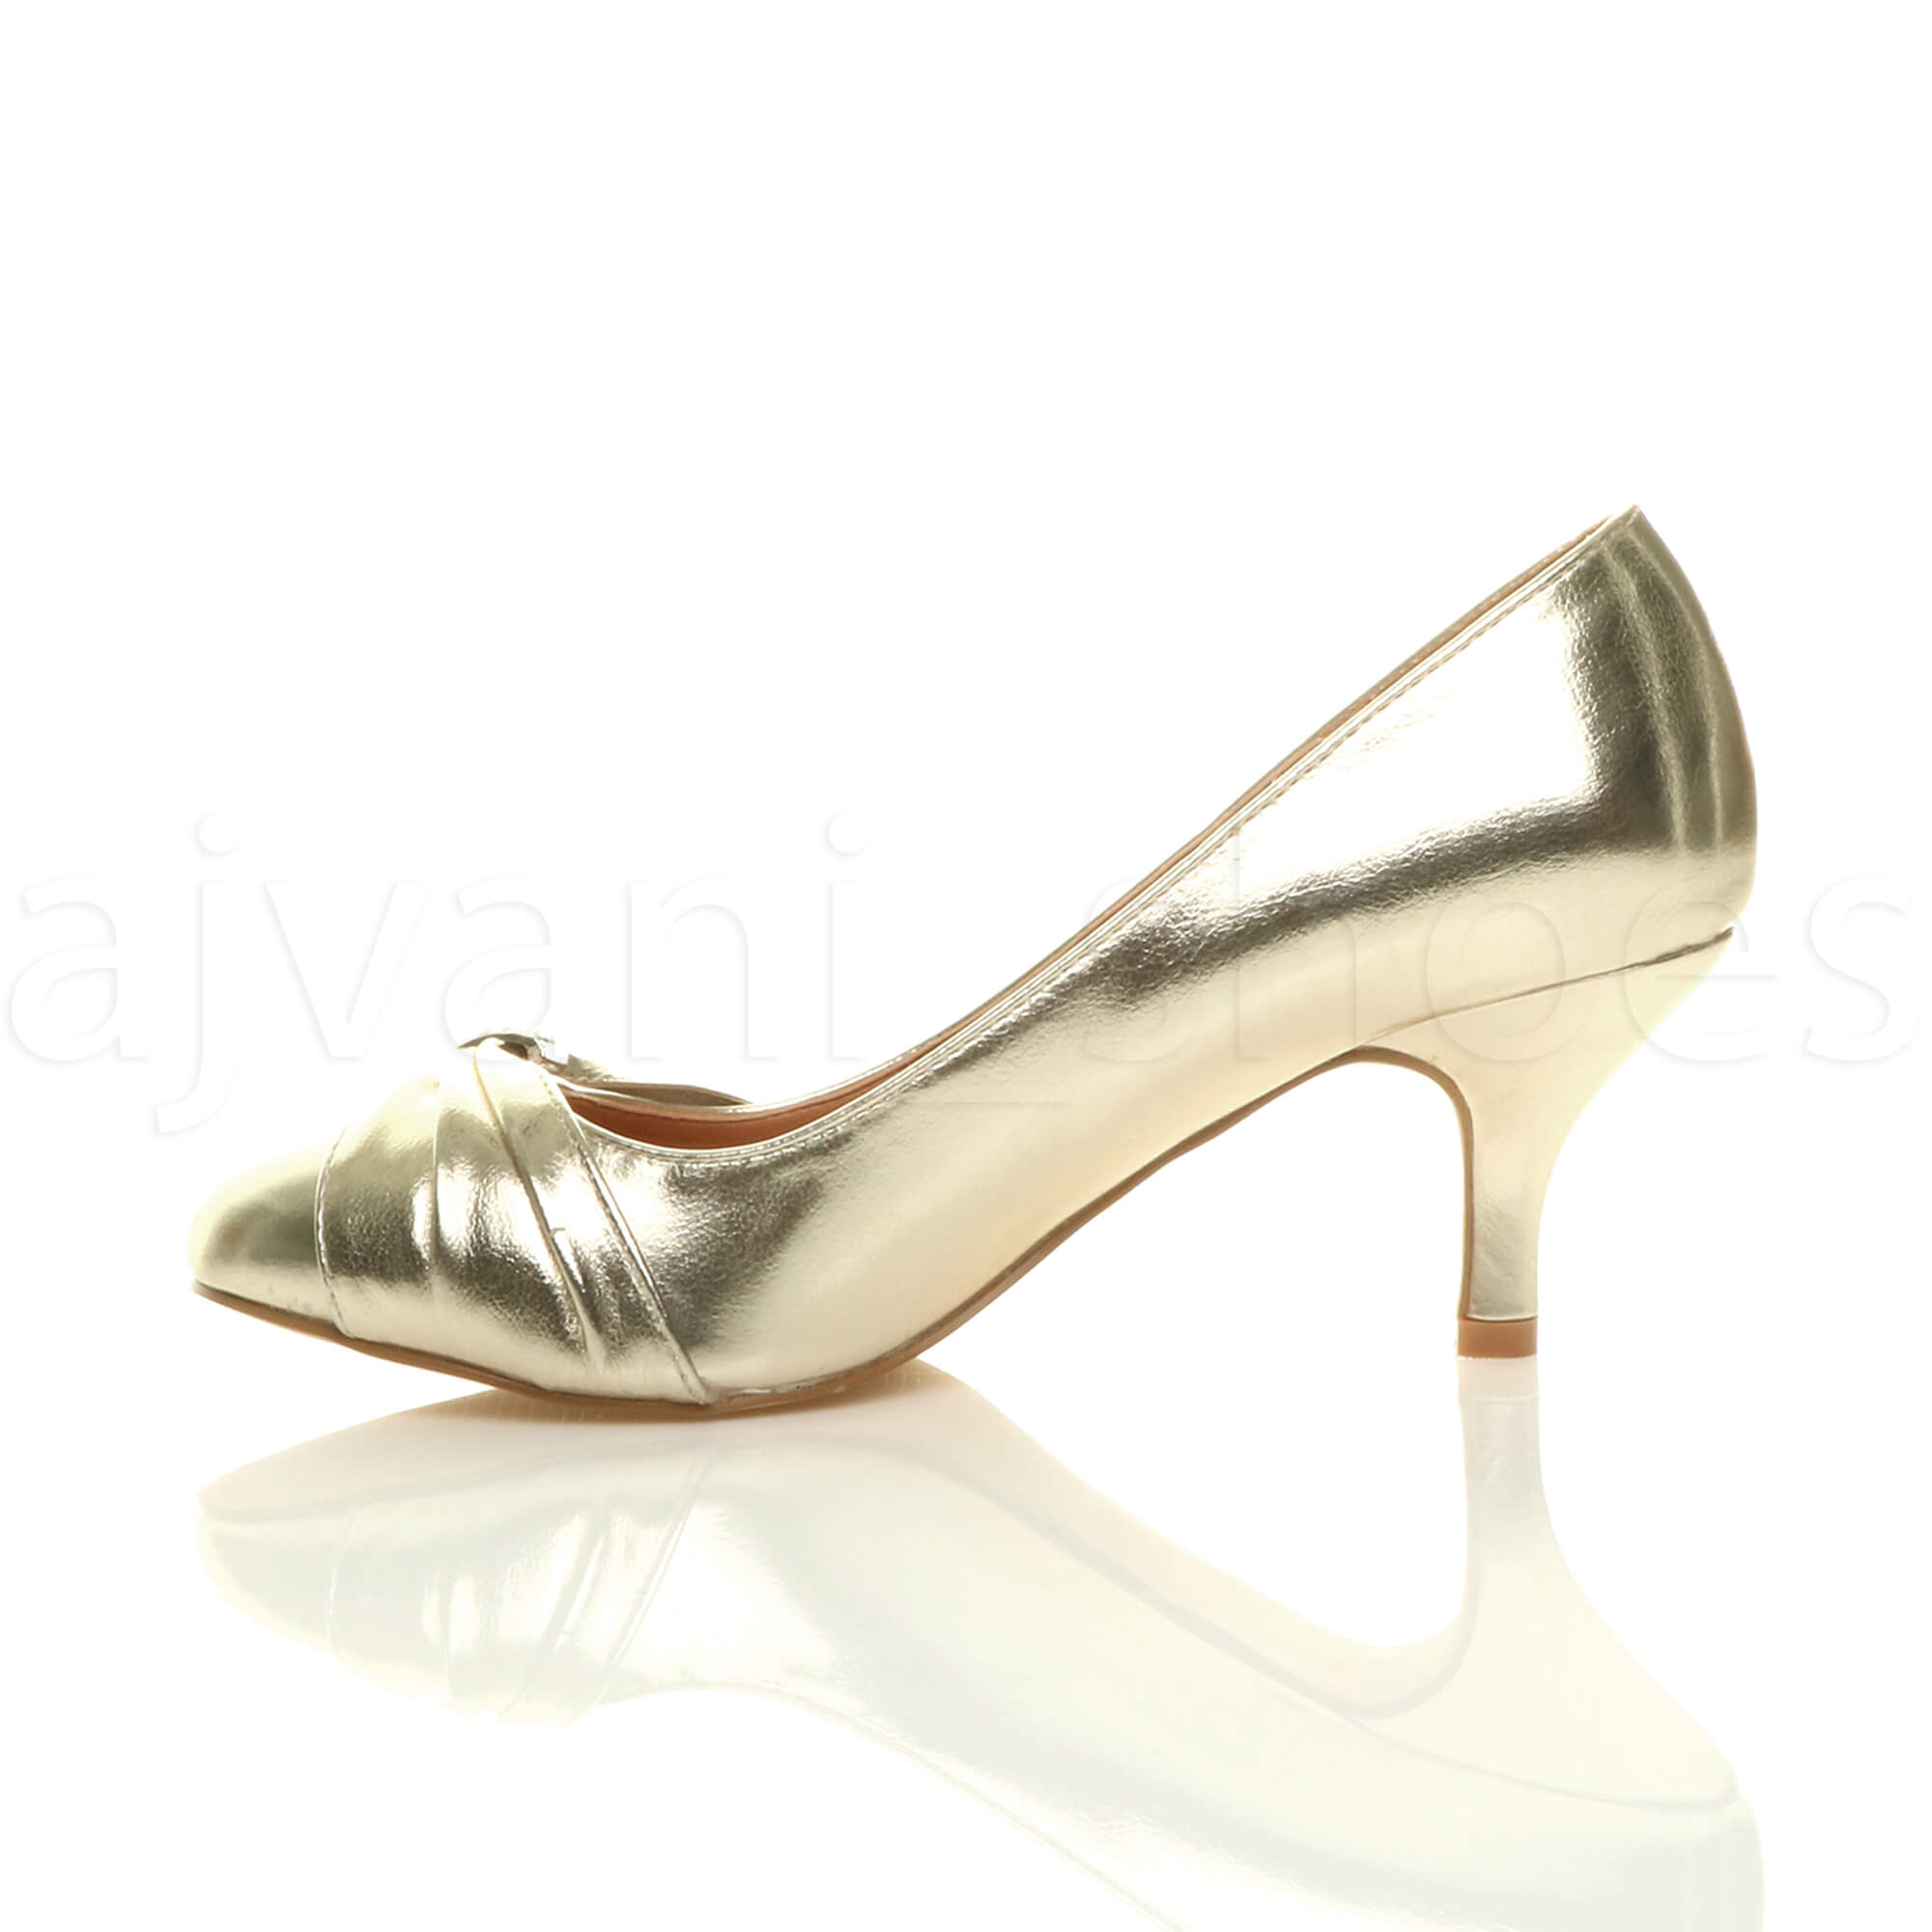 WOMENS-LADIES-MID-HEEL-RUCHED-DIAMANTE-WEDDING-PROM-EVENING-COURT-SHOES-SIZE thumbnail 28